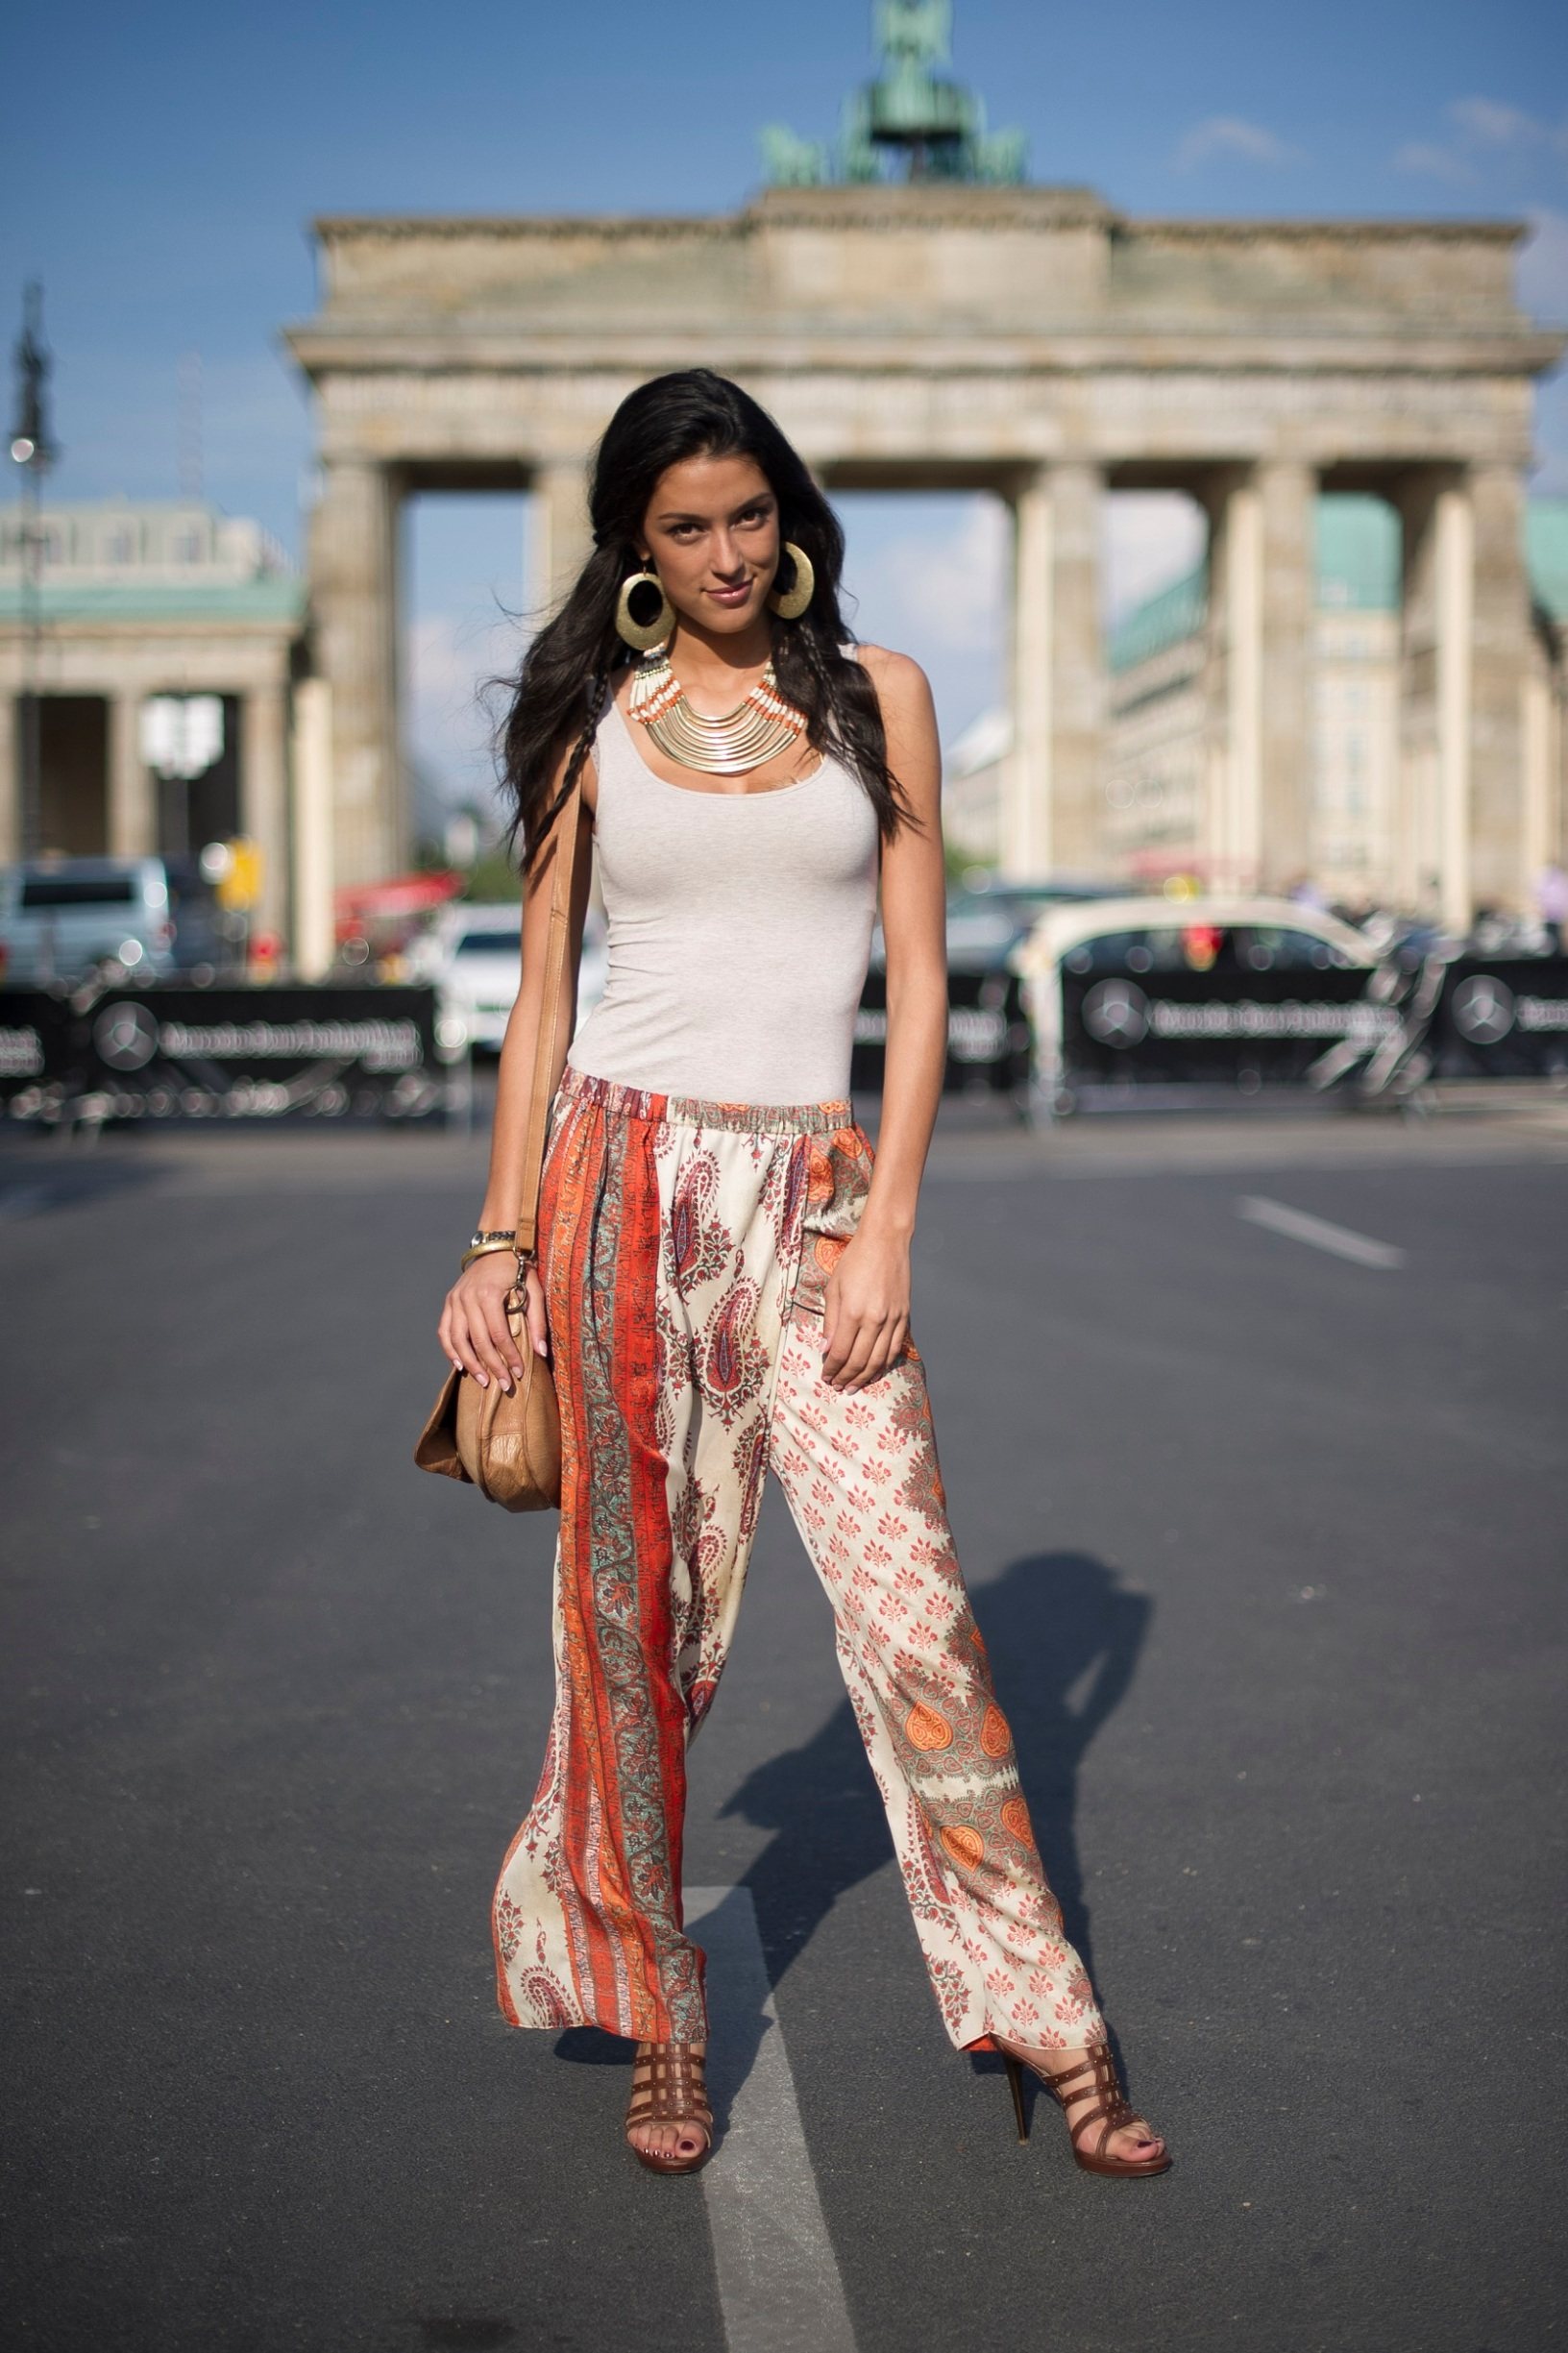 BERLIN, GERMANY - JULY 01:  Rebecca Mir wears shoes from Valentina and pants from Zara as she attends the Mercedes-Benz Fashion week spring and summer 2014 at the Brandenburg Gate on July 1, 2013 in Berlin, Germany.  (Photo by Timur Emek/Getty Images)